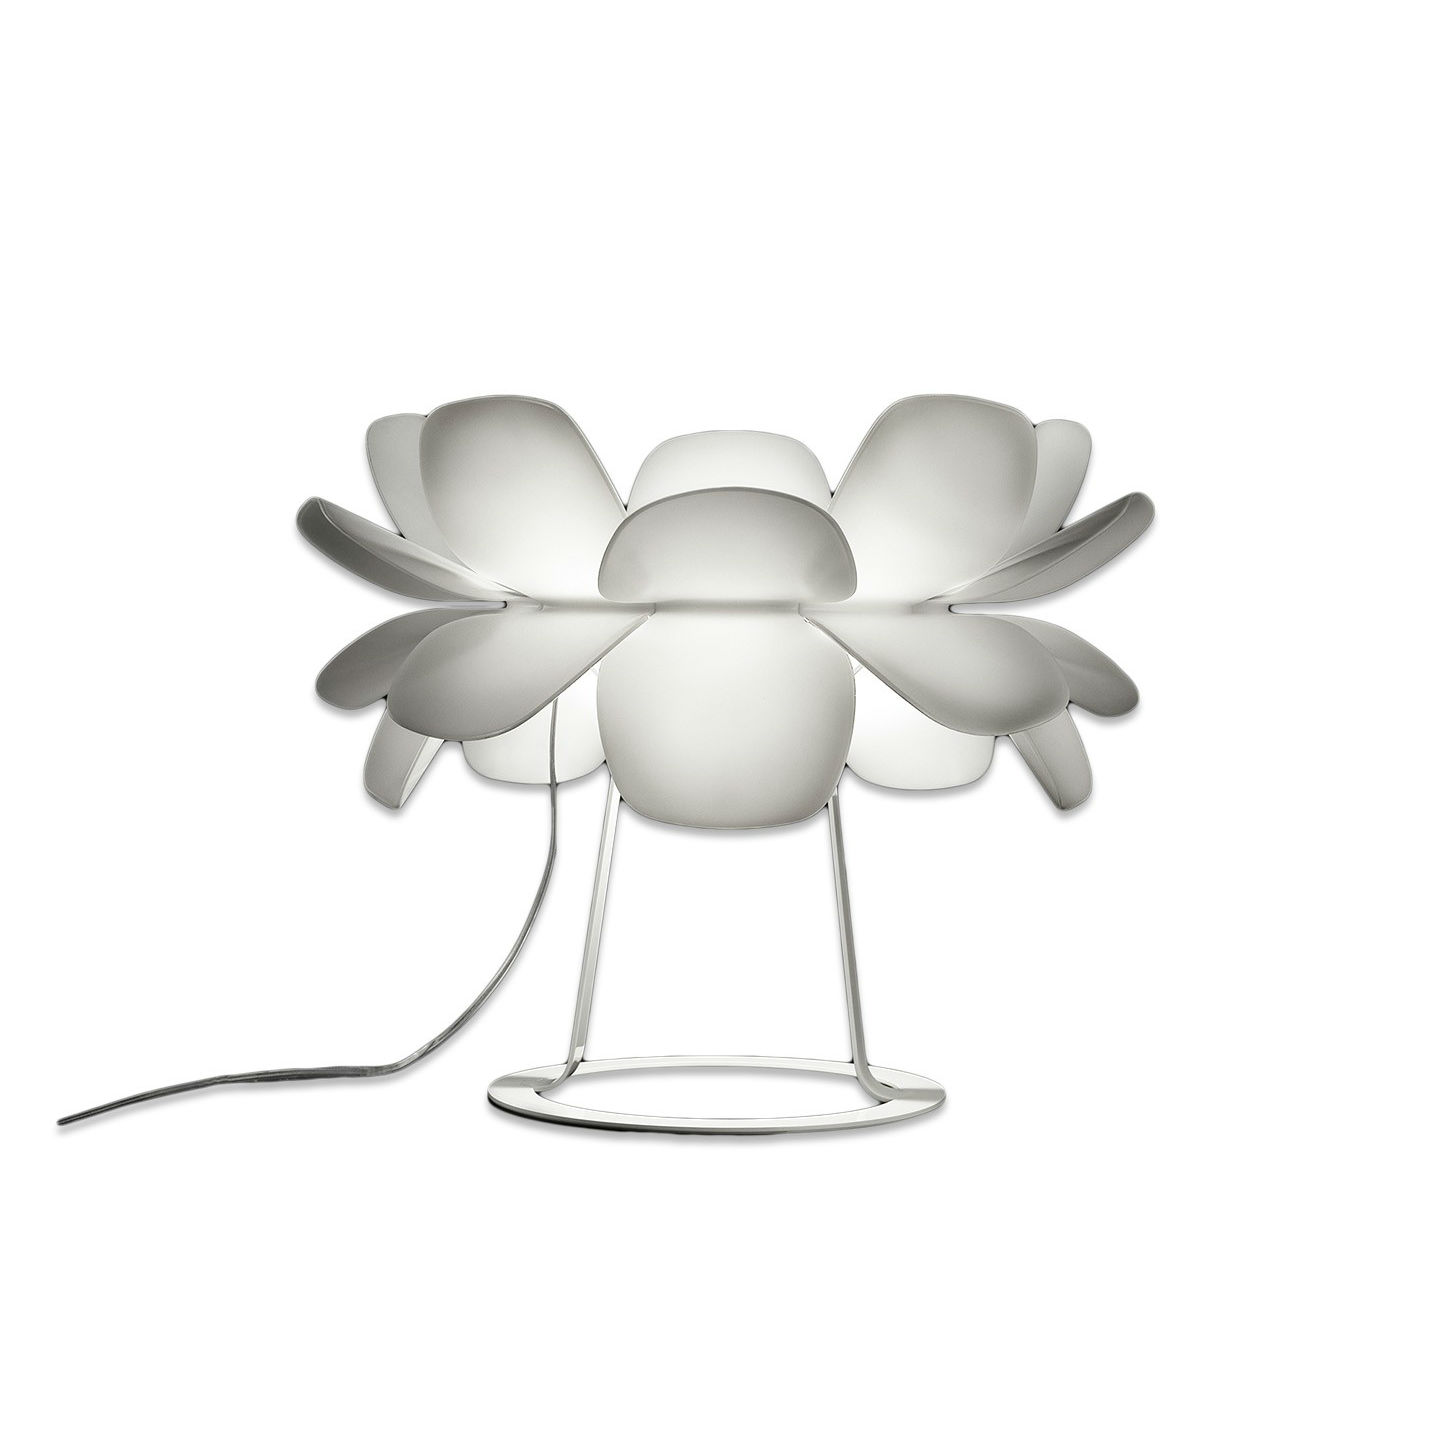 Infiore M 5807 Table Lamp white